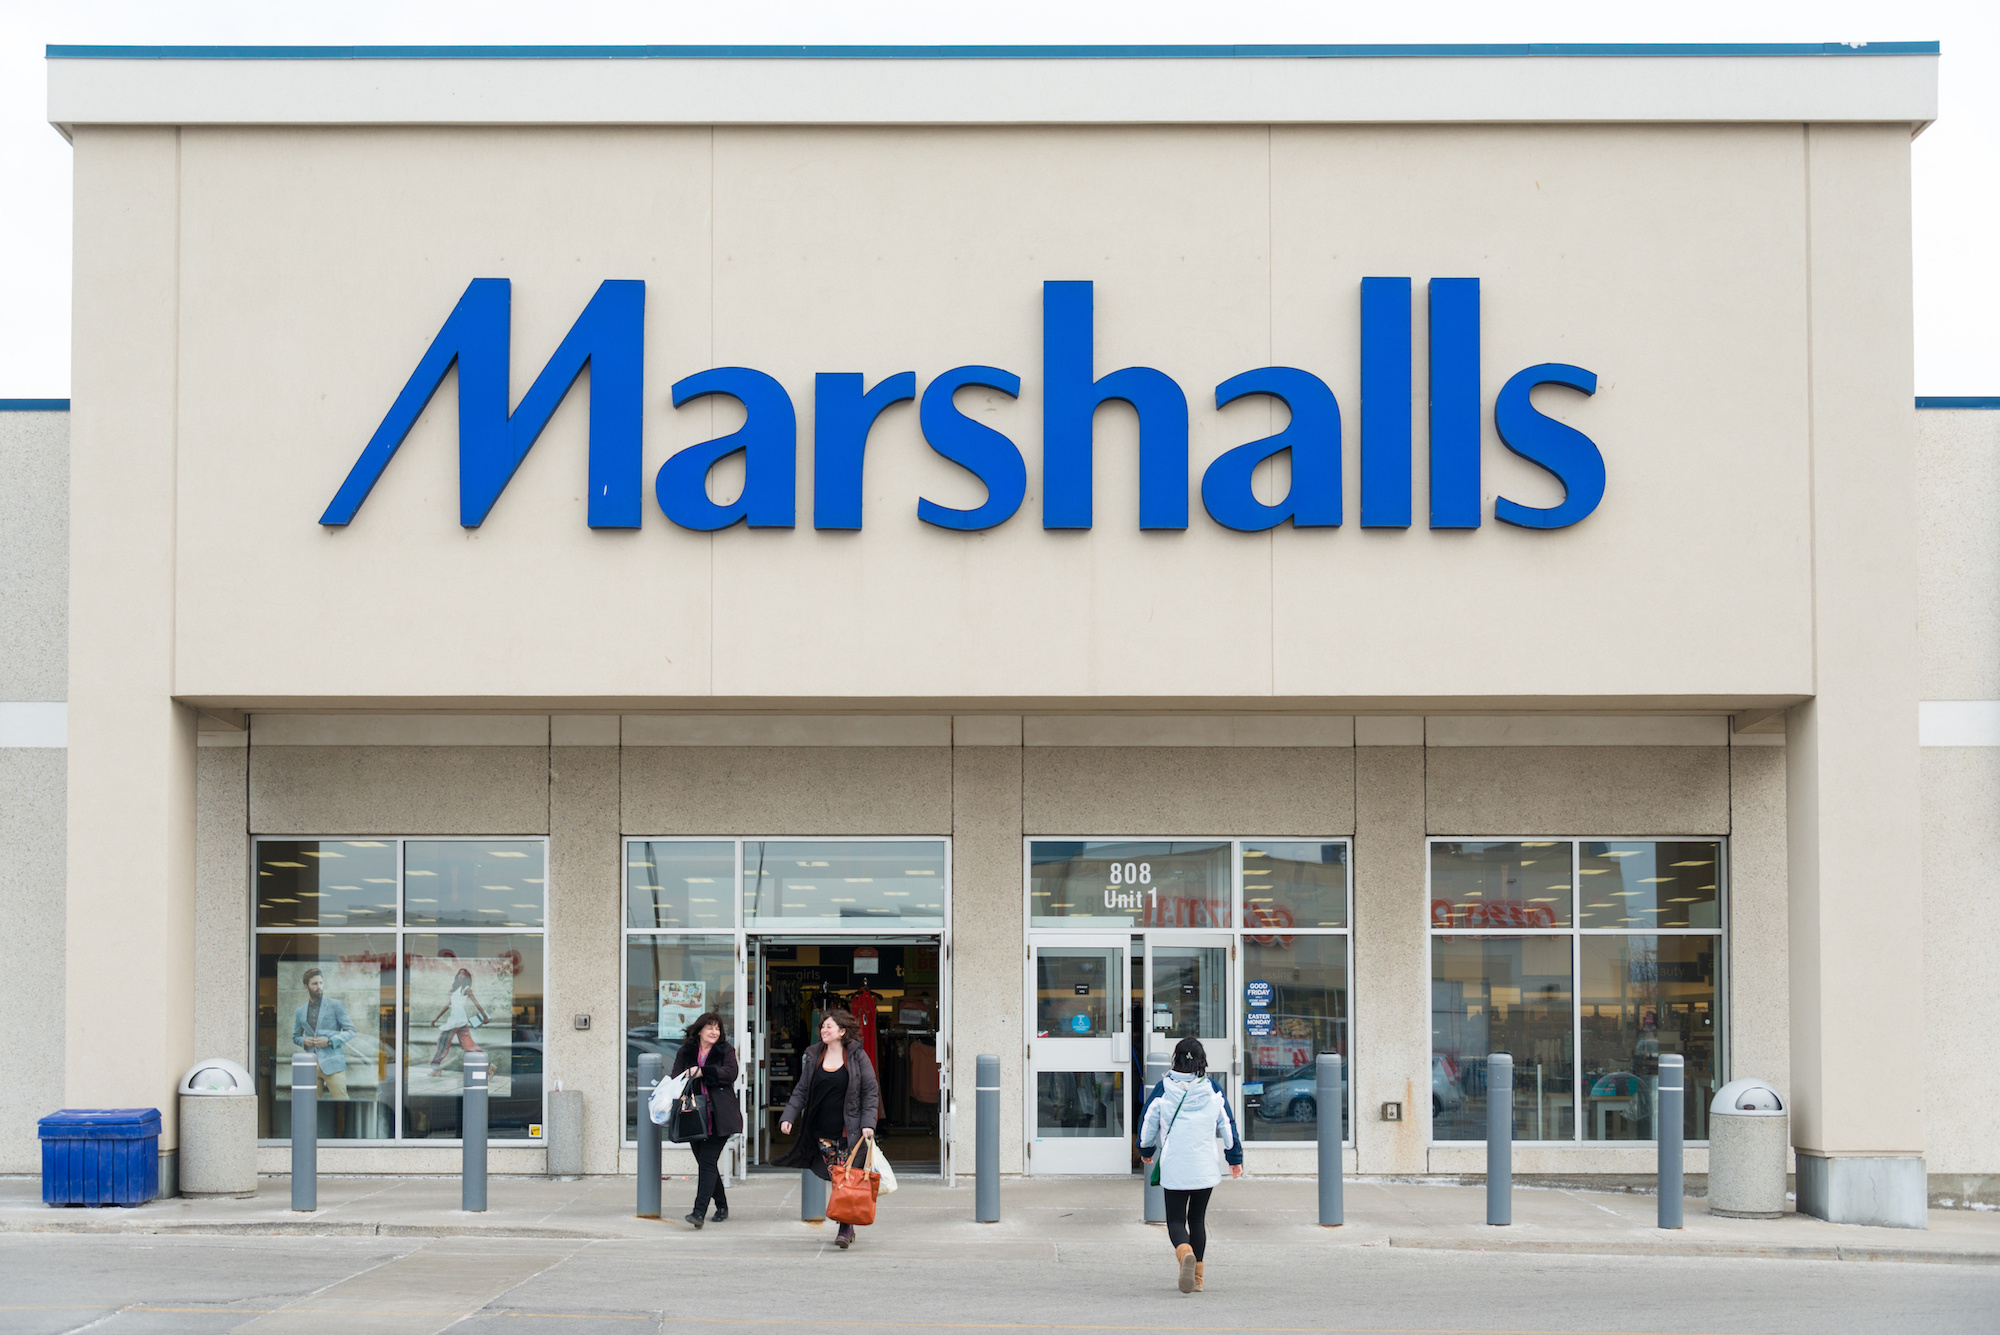 The exterior of a Marshalls store